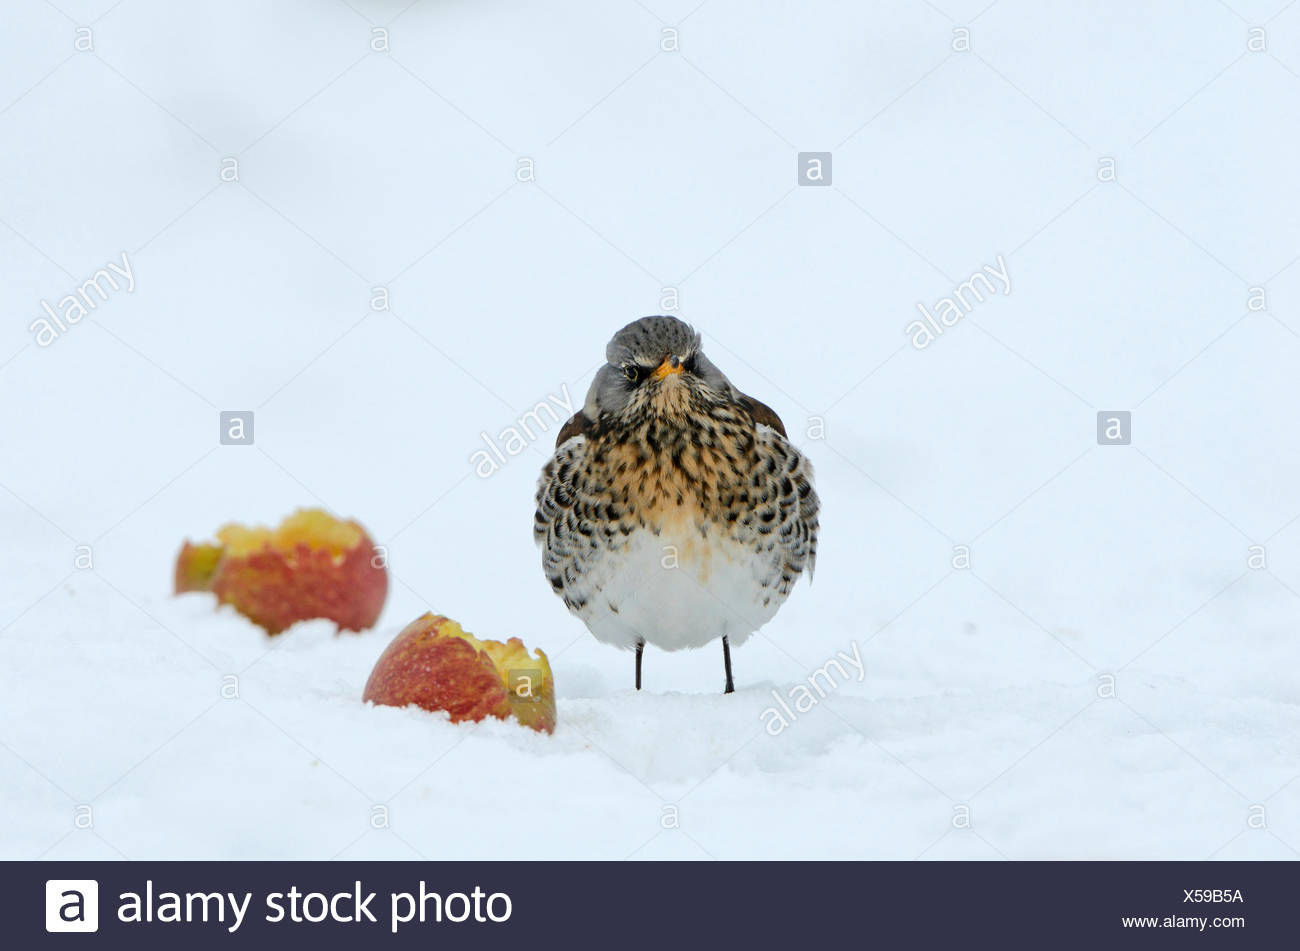 Fieldfare  Turdus pilaris feeding on apples in snow Norfolk - Stock Image